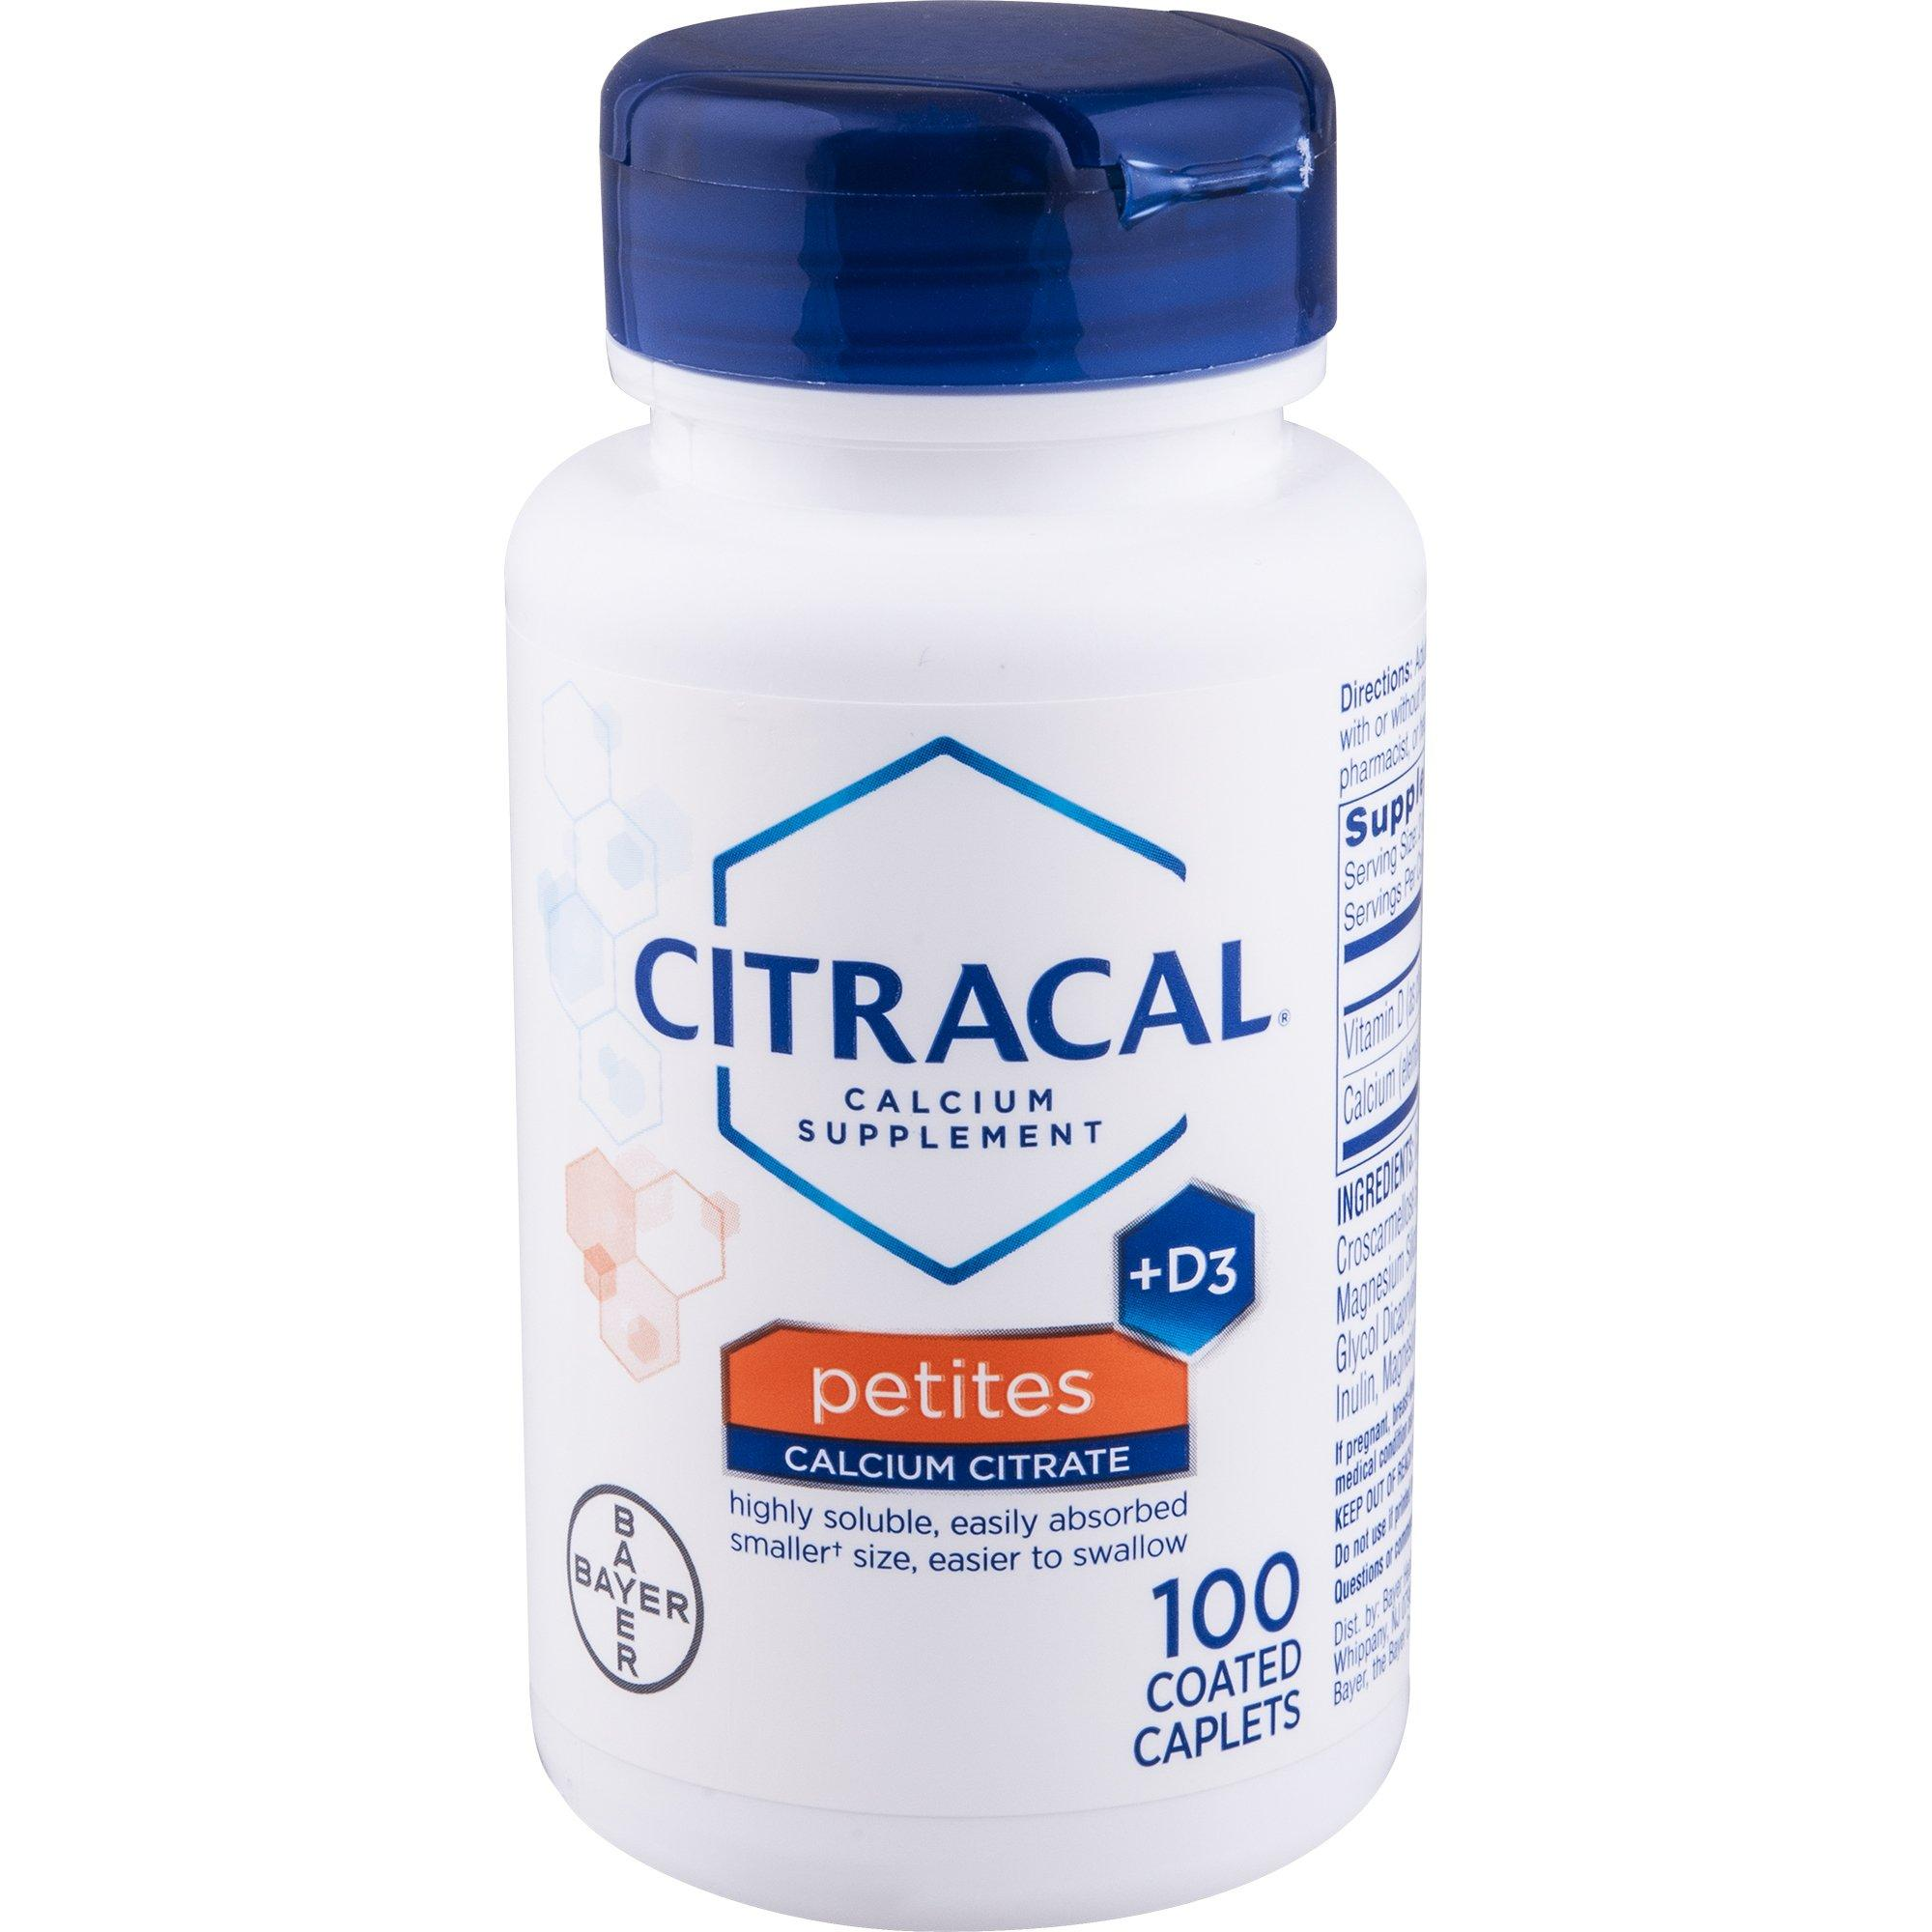 Citracal Petites, Highly Soluble, Easily Digested, 400 mg Ca